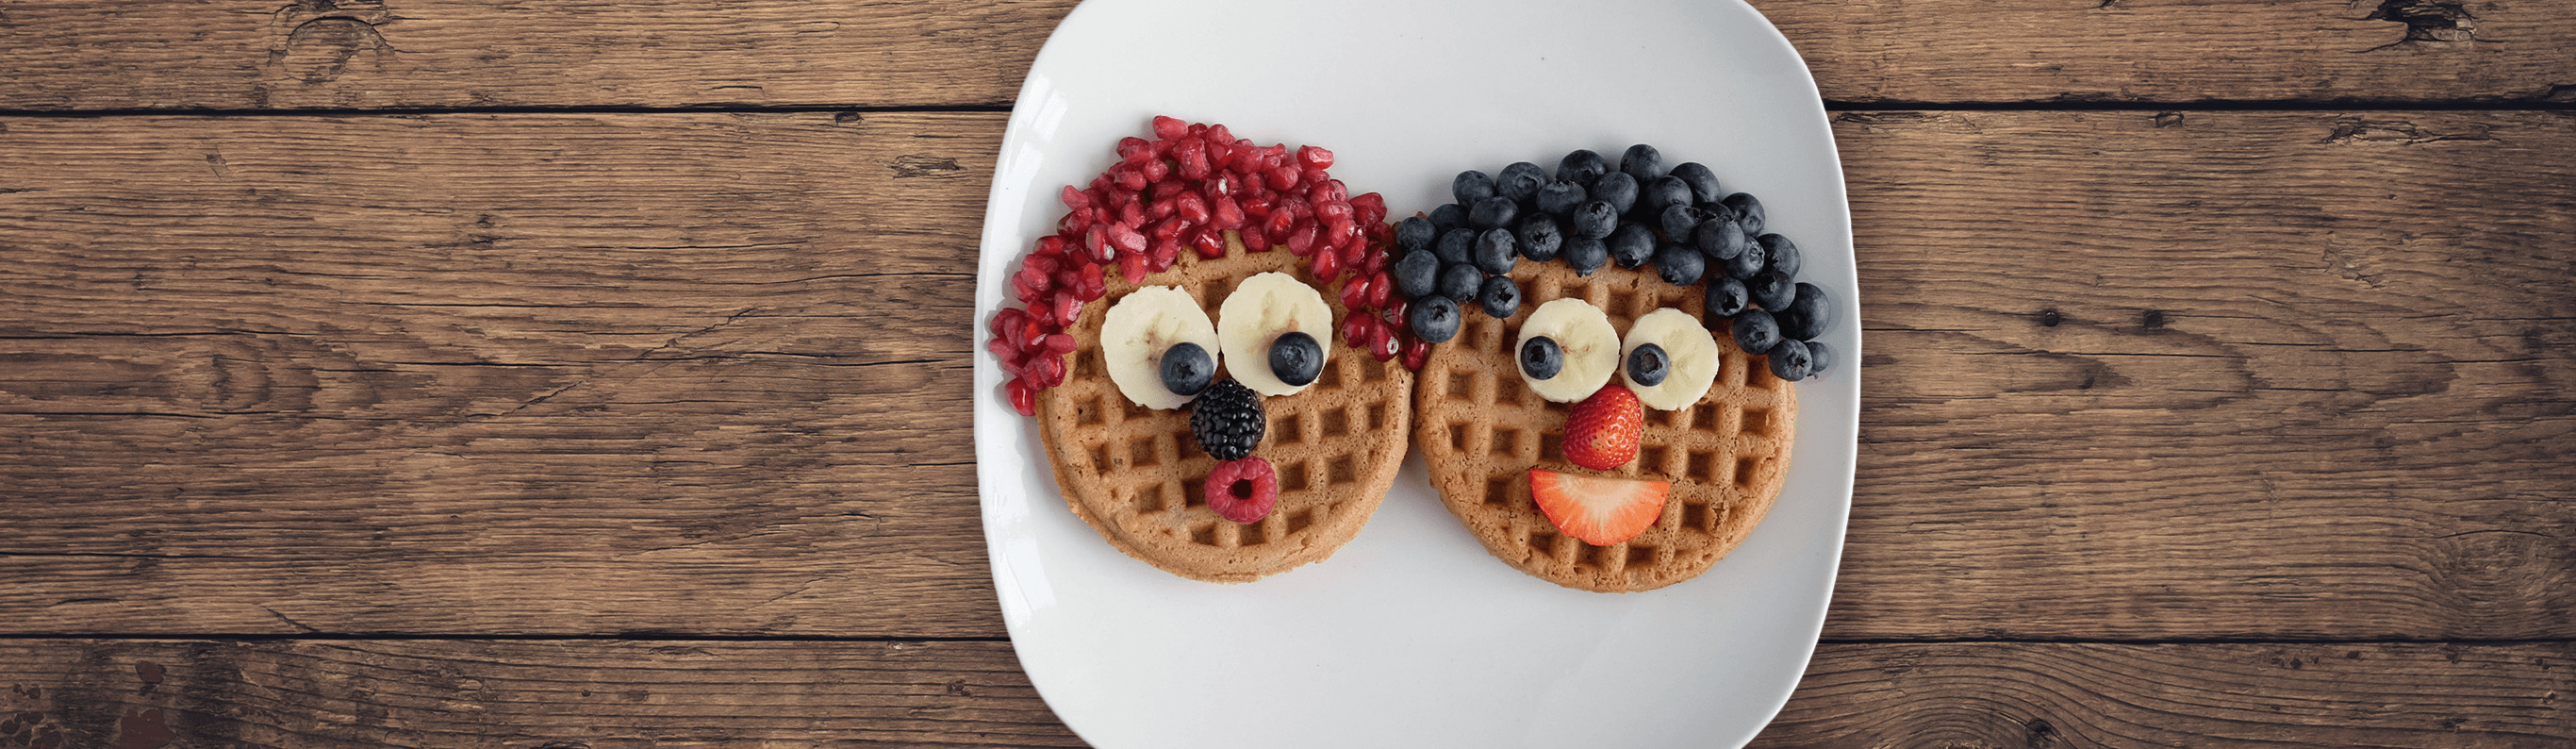 Breakfast Buddy Waffles